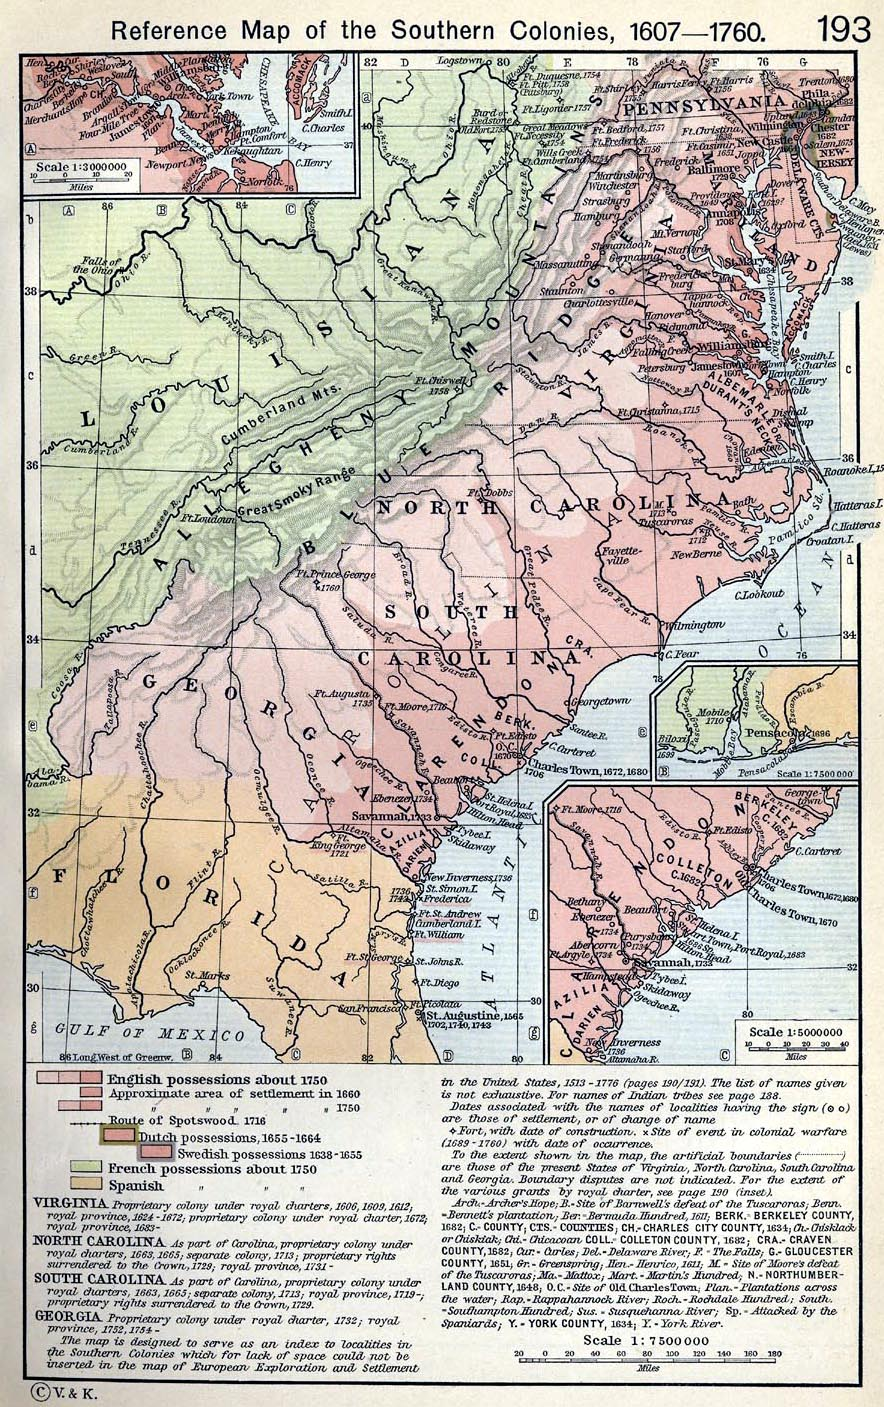 a history of the colonies in north carolina The north carolina colony was one of the 13 original colonies in america the 13 original colonies were divided into three regions including the new england colonies, the middle colonies, and the southern colonies.